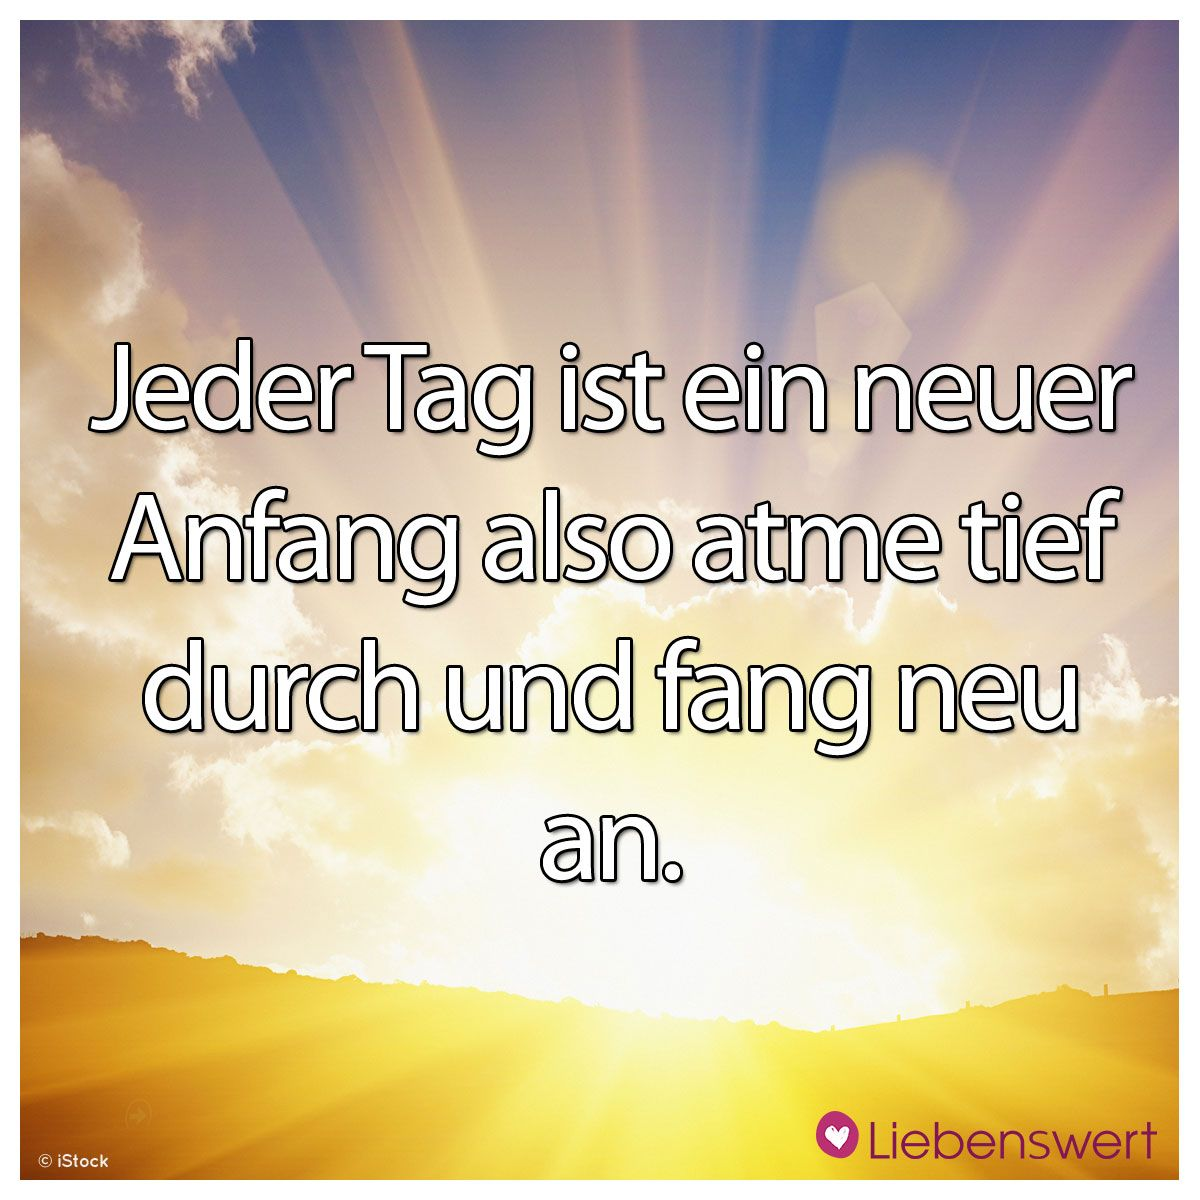 Spruche Fur Einen Neuanfang Traurige Spruche Quotes Und Motivation